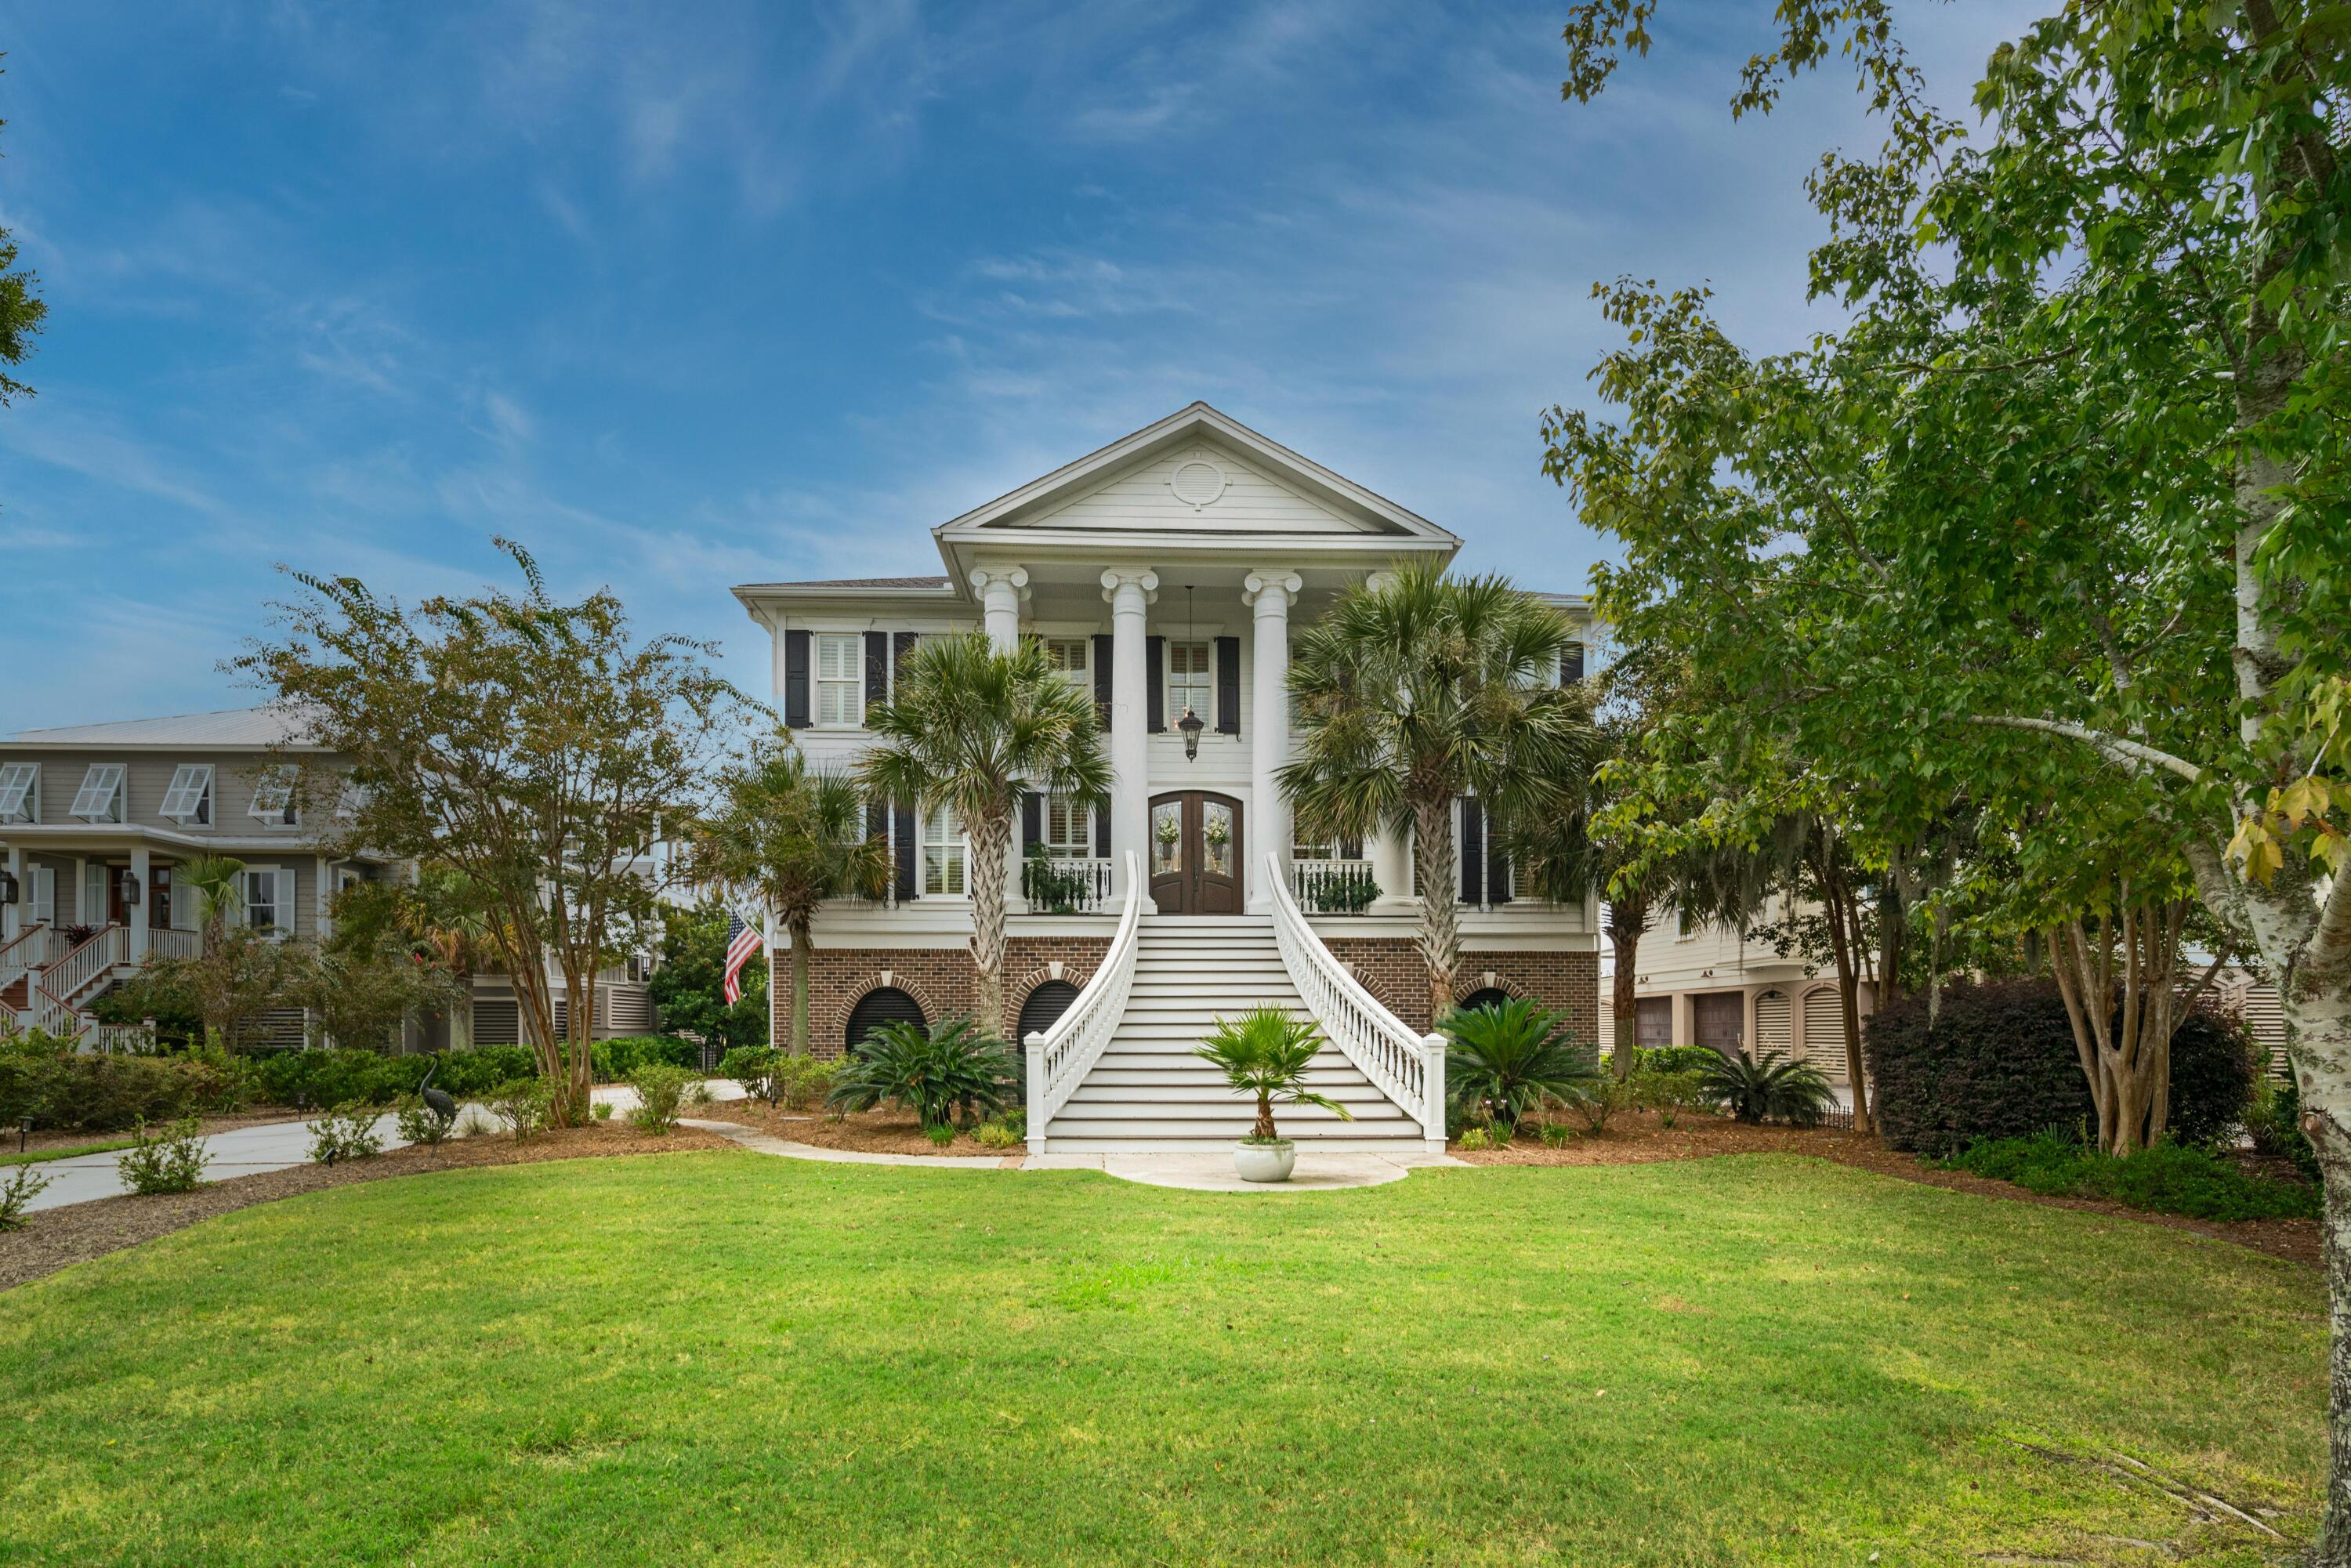 Rivertowne Country Club Homes For Sale - 1652 Rivertowne Country Club, Mount Pleasant, SC - 70